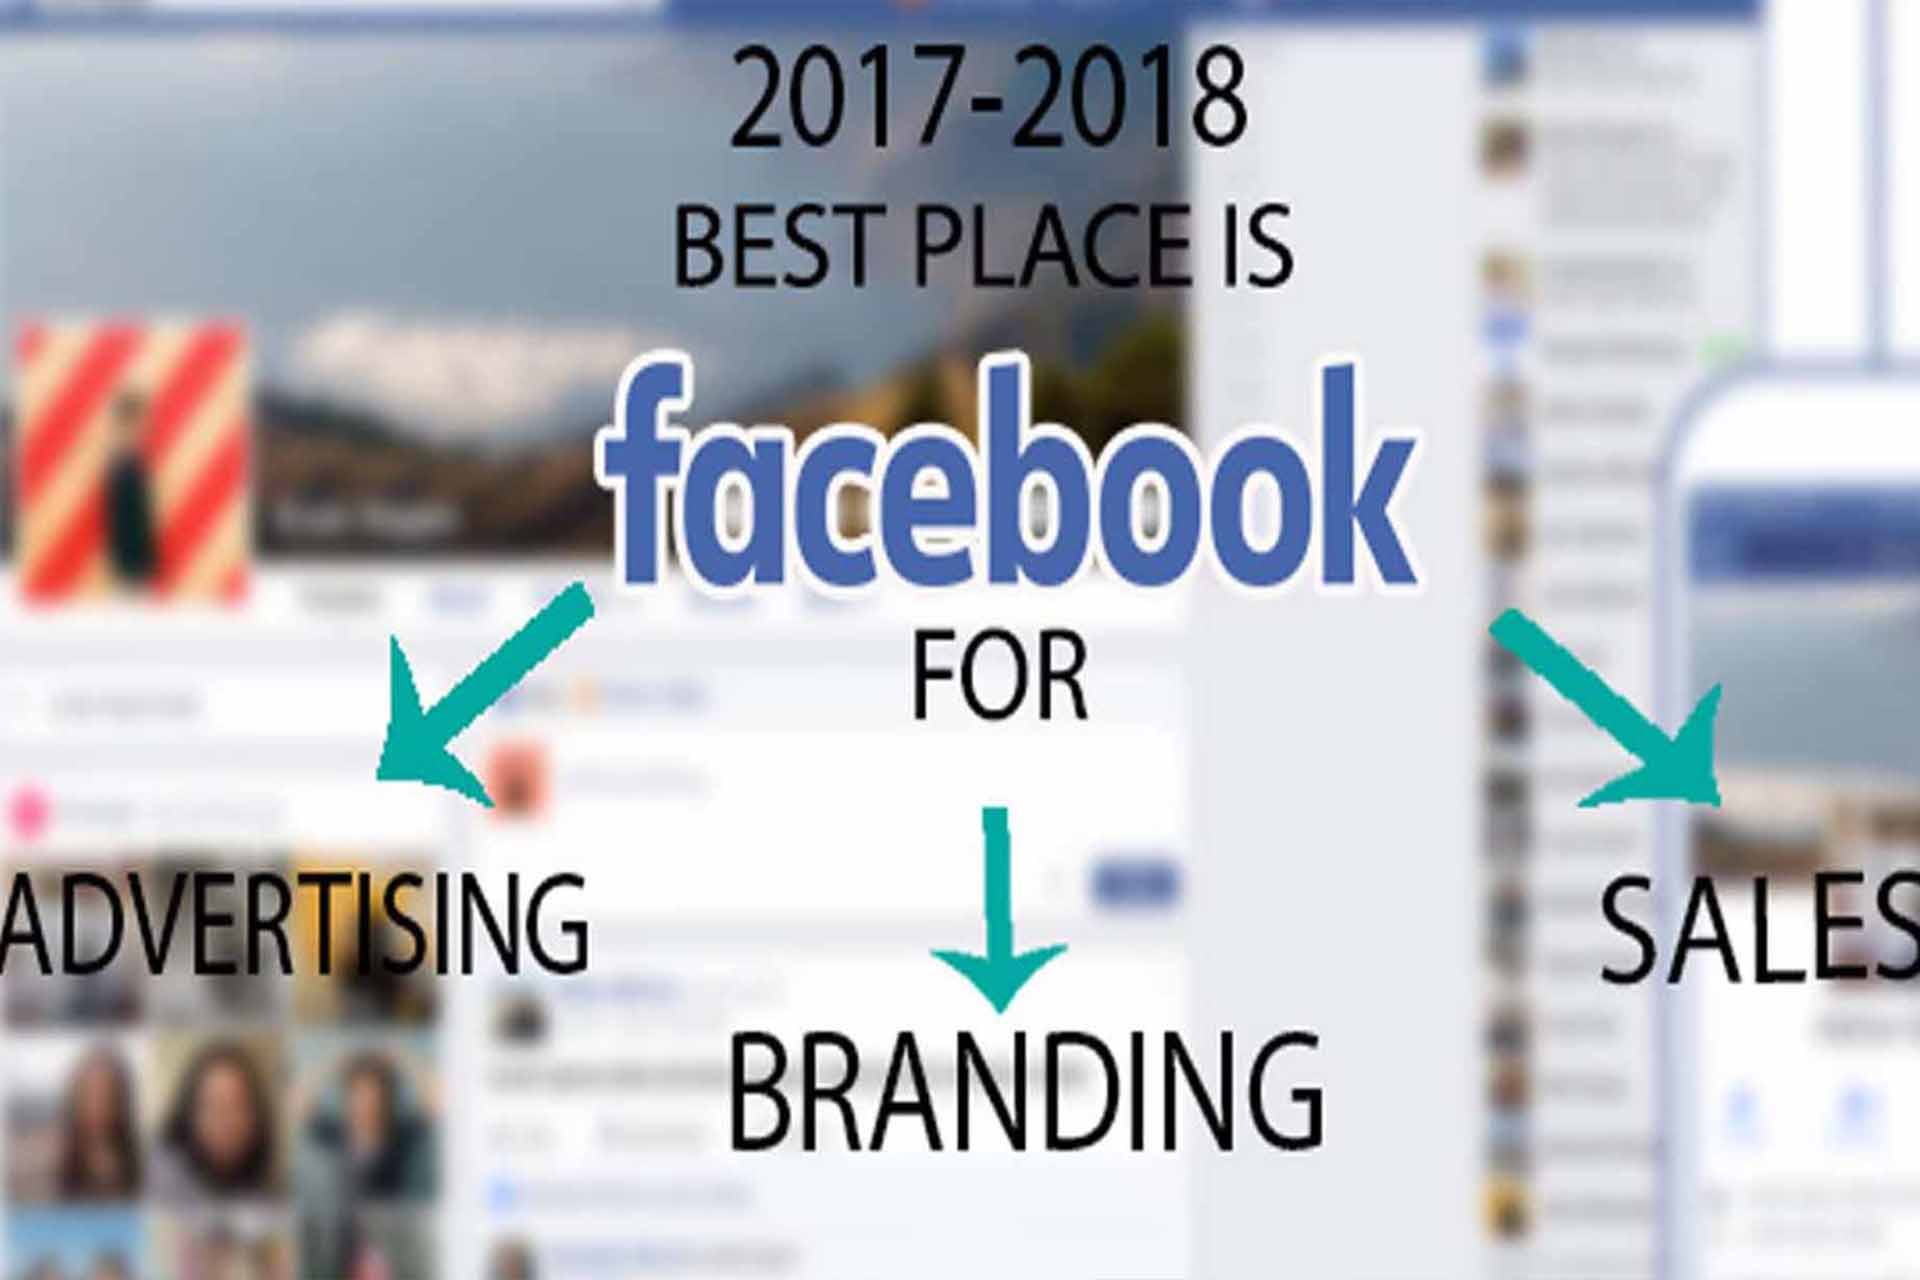 Facebook advertisement – The Best plateform for branding advertising and sales